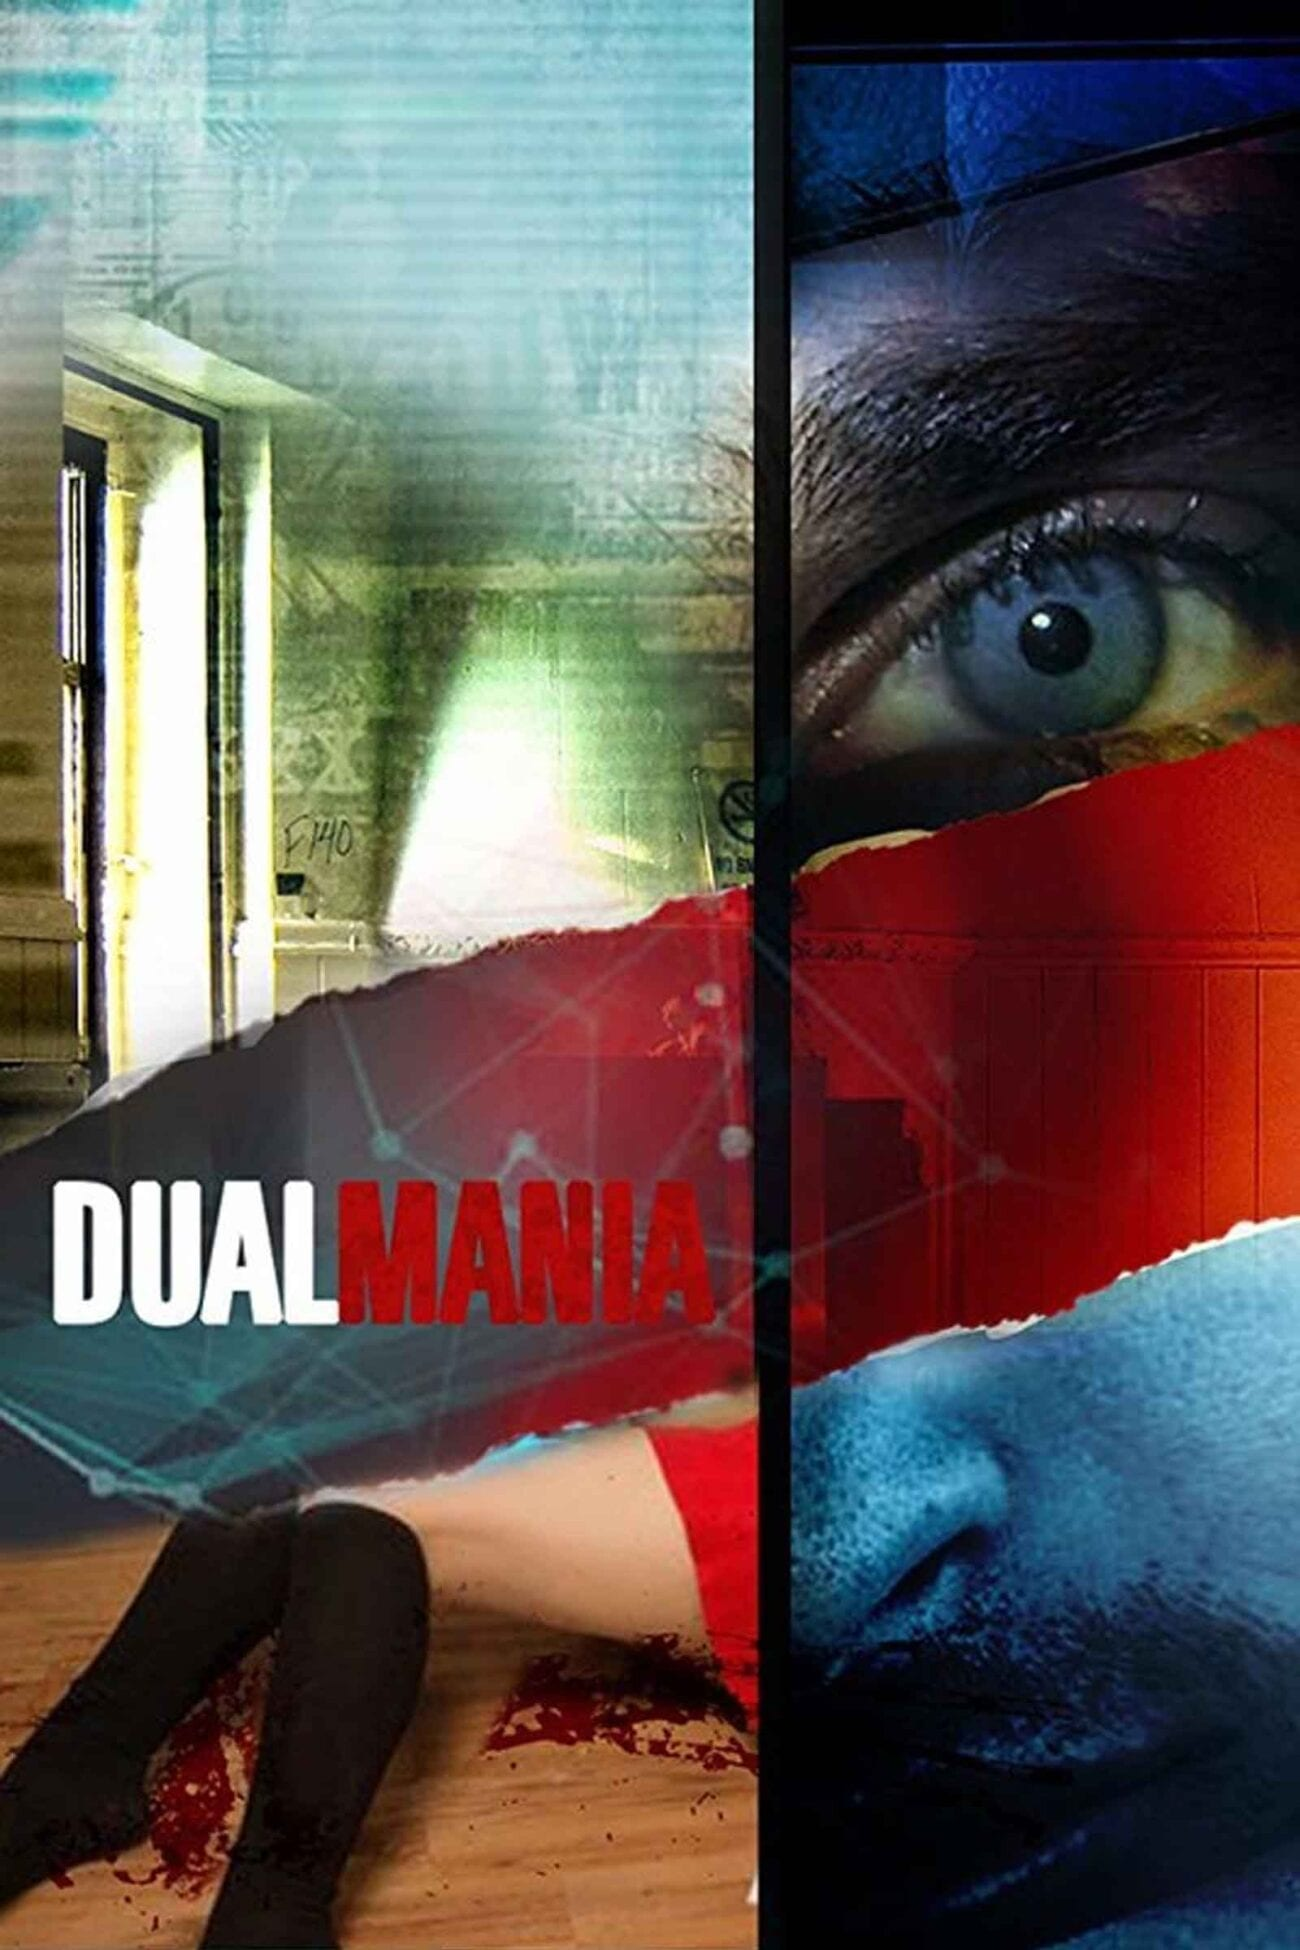 'Dual Mania' is a feature length film created by Joseph Strickland which was originally inspired by the Jeffrey Dahmer trial.